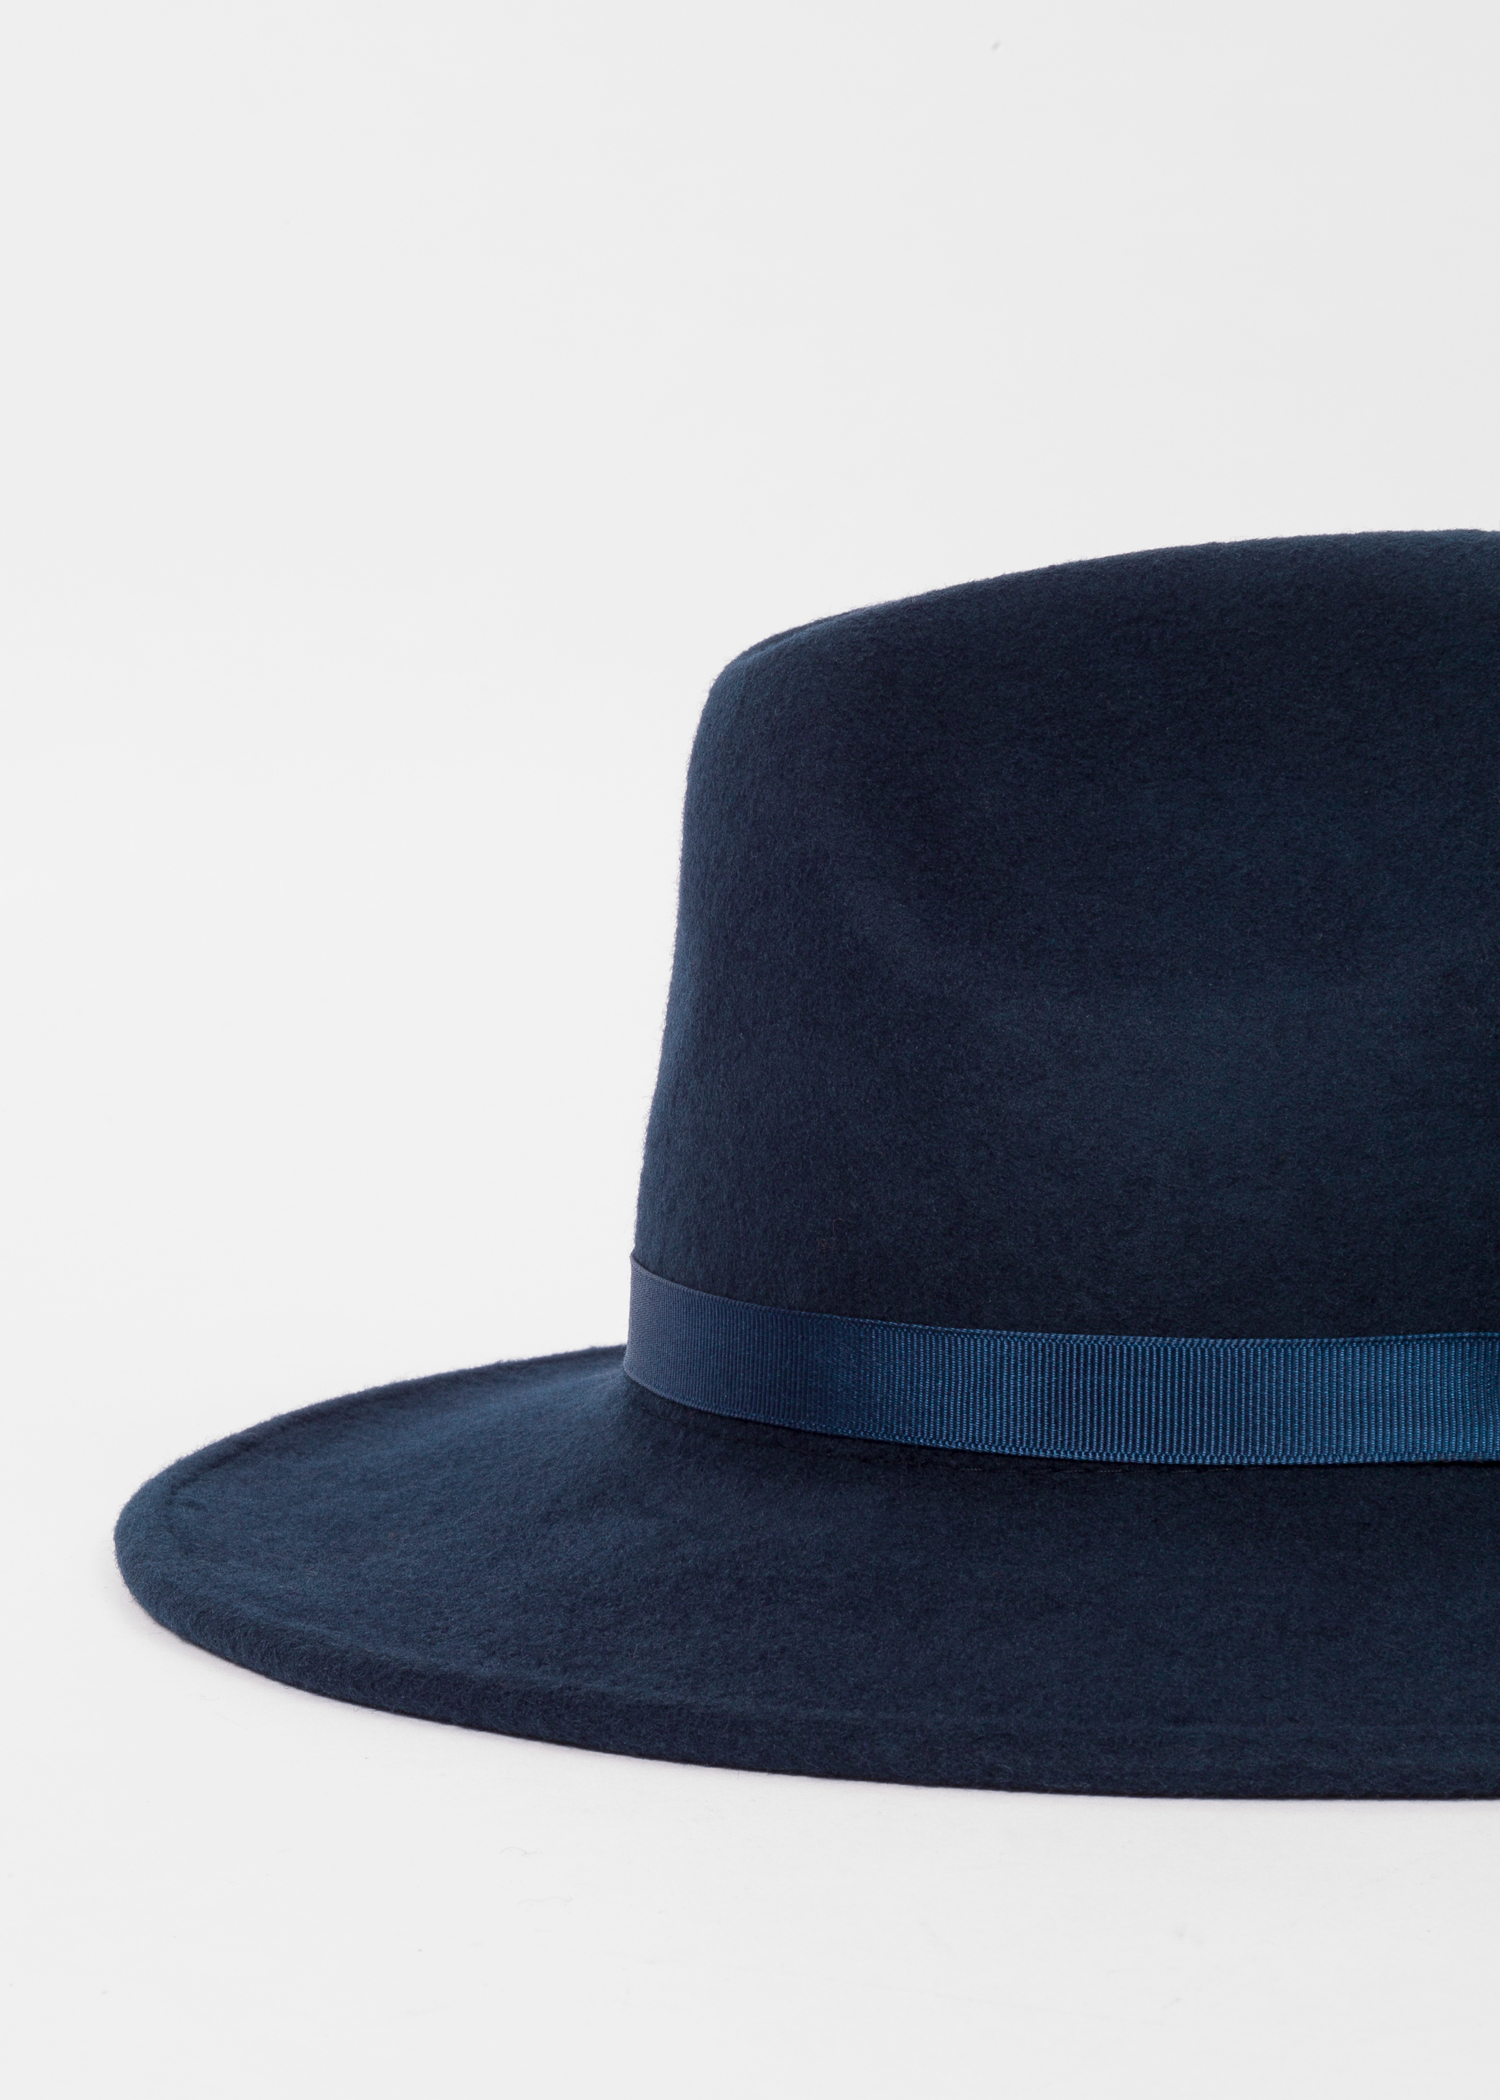 17f0dc19 Detiled View - Women's Navy Wool Felt Fedora Hat Paul Smith